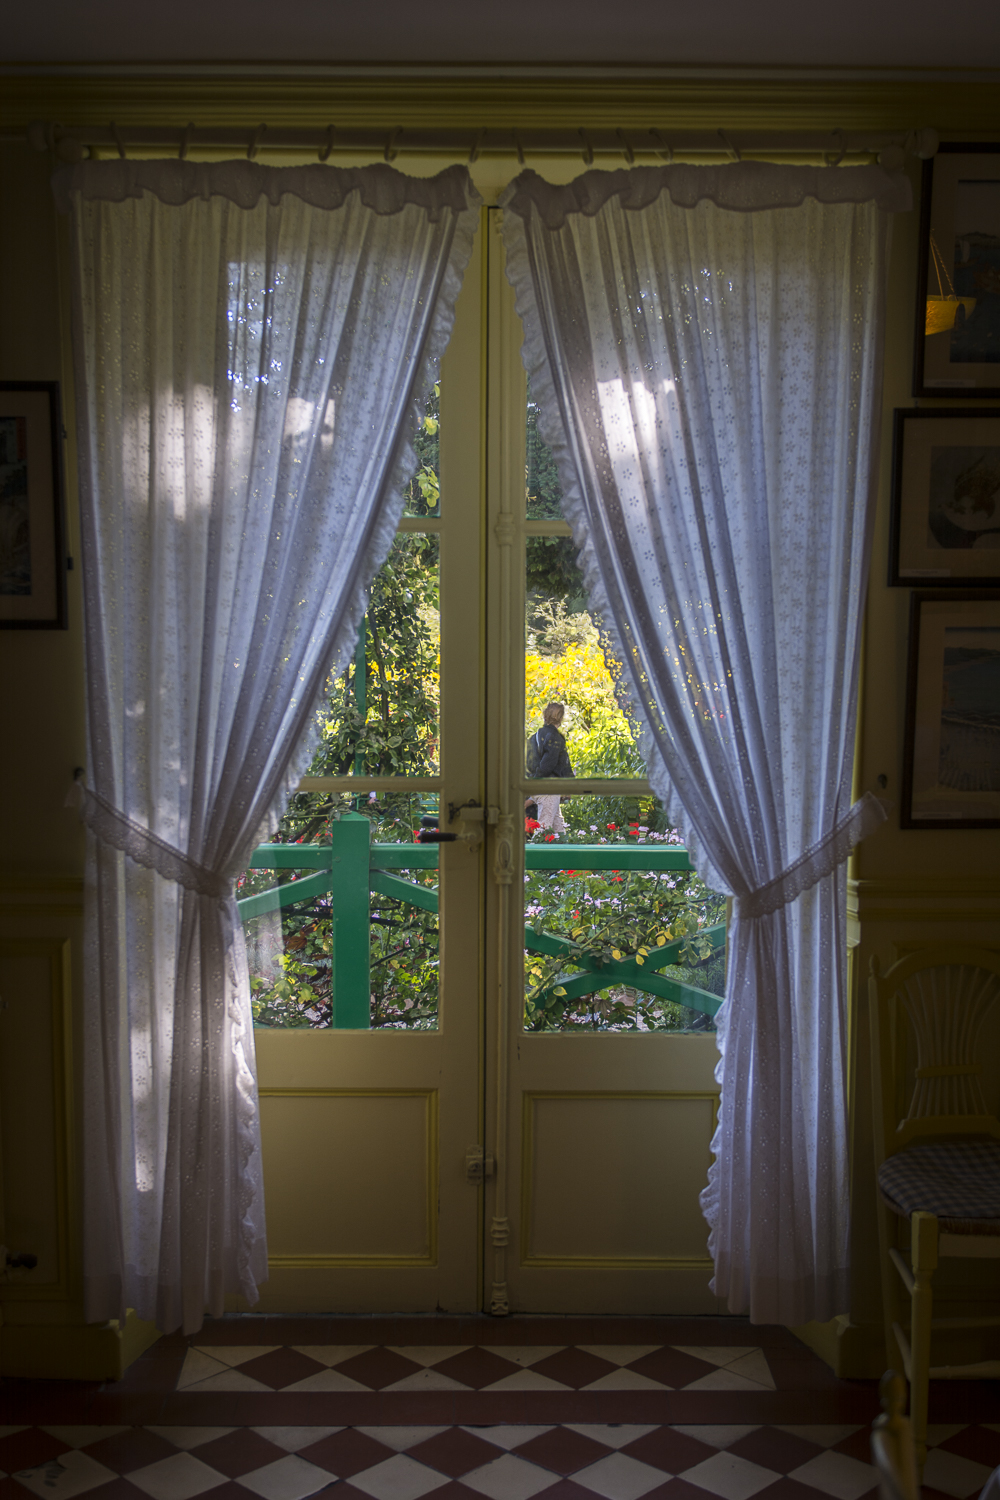 MONET's house interior - PHOTO: ALEXANDER J.E. BRADLEY - NIKON D7100 - 24-70MM F/2.8 @ 29MM - F/2.8 - 1/160 - ISO 100